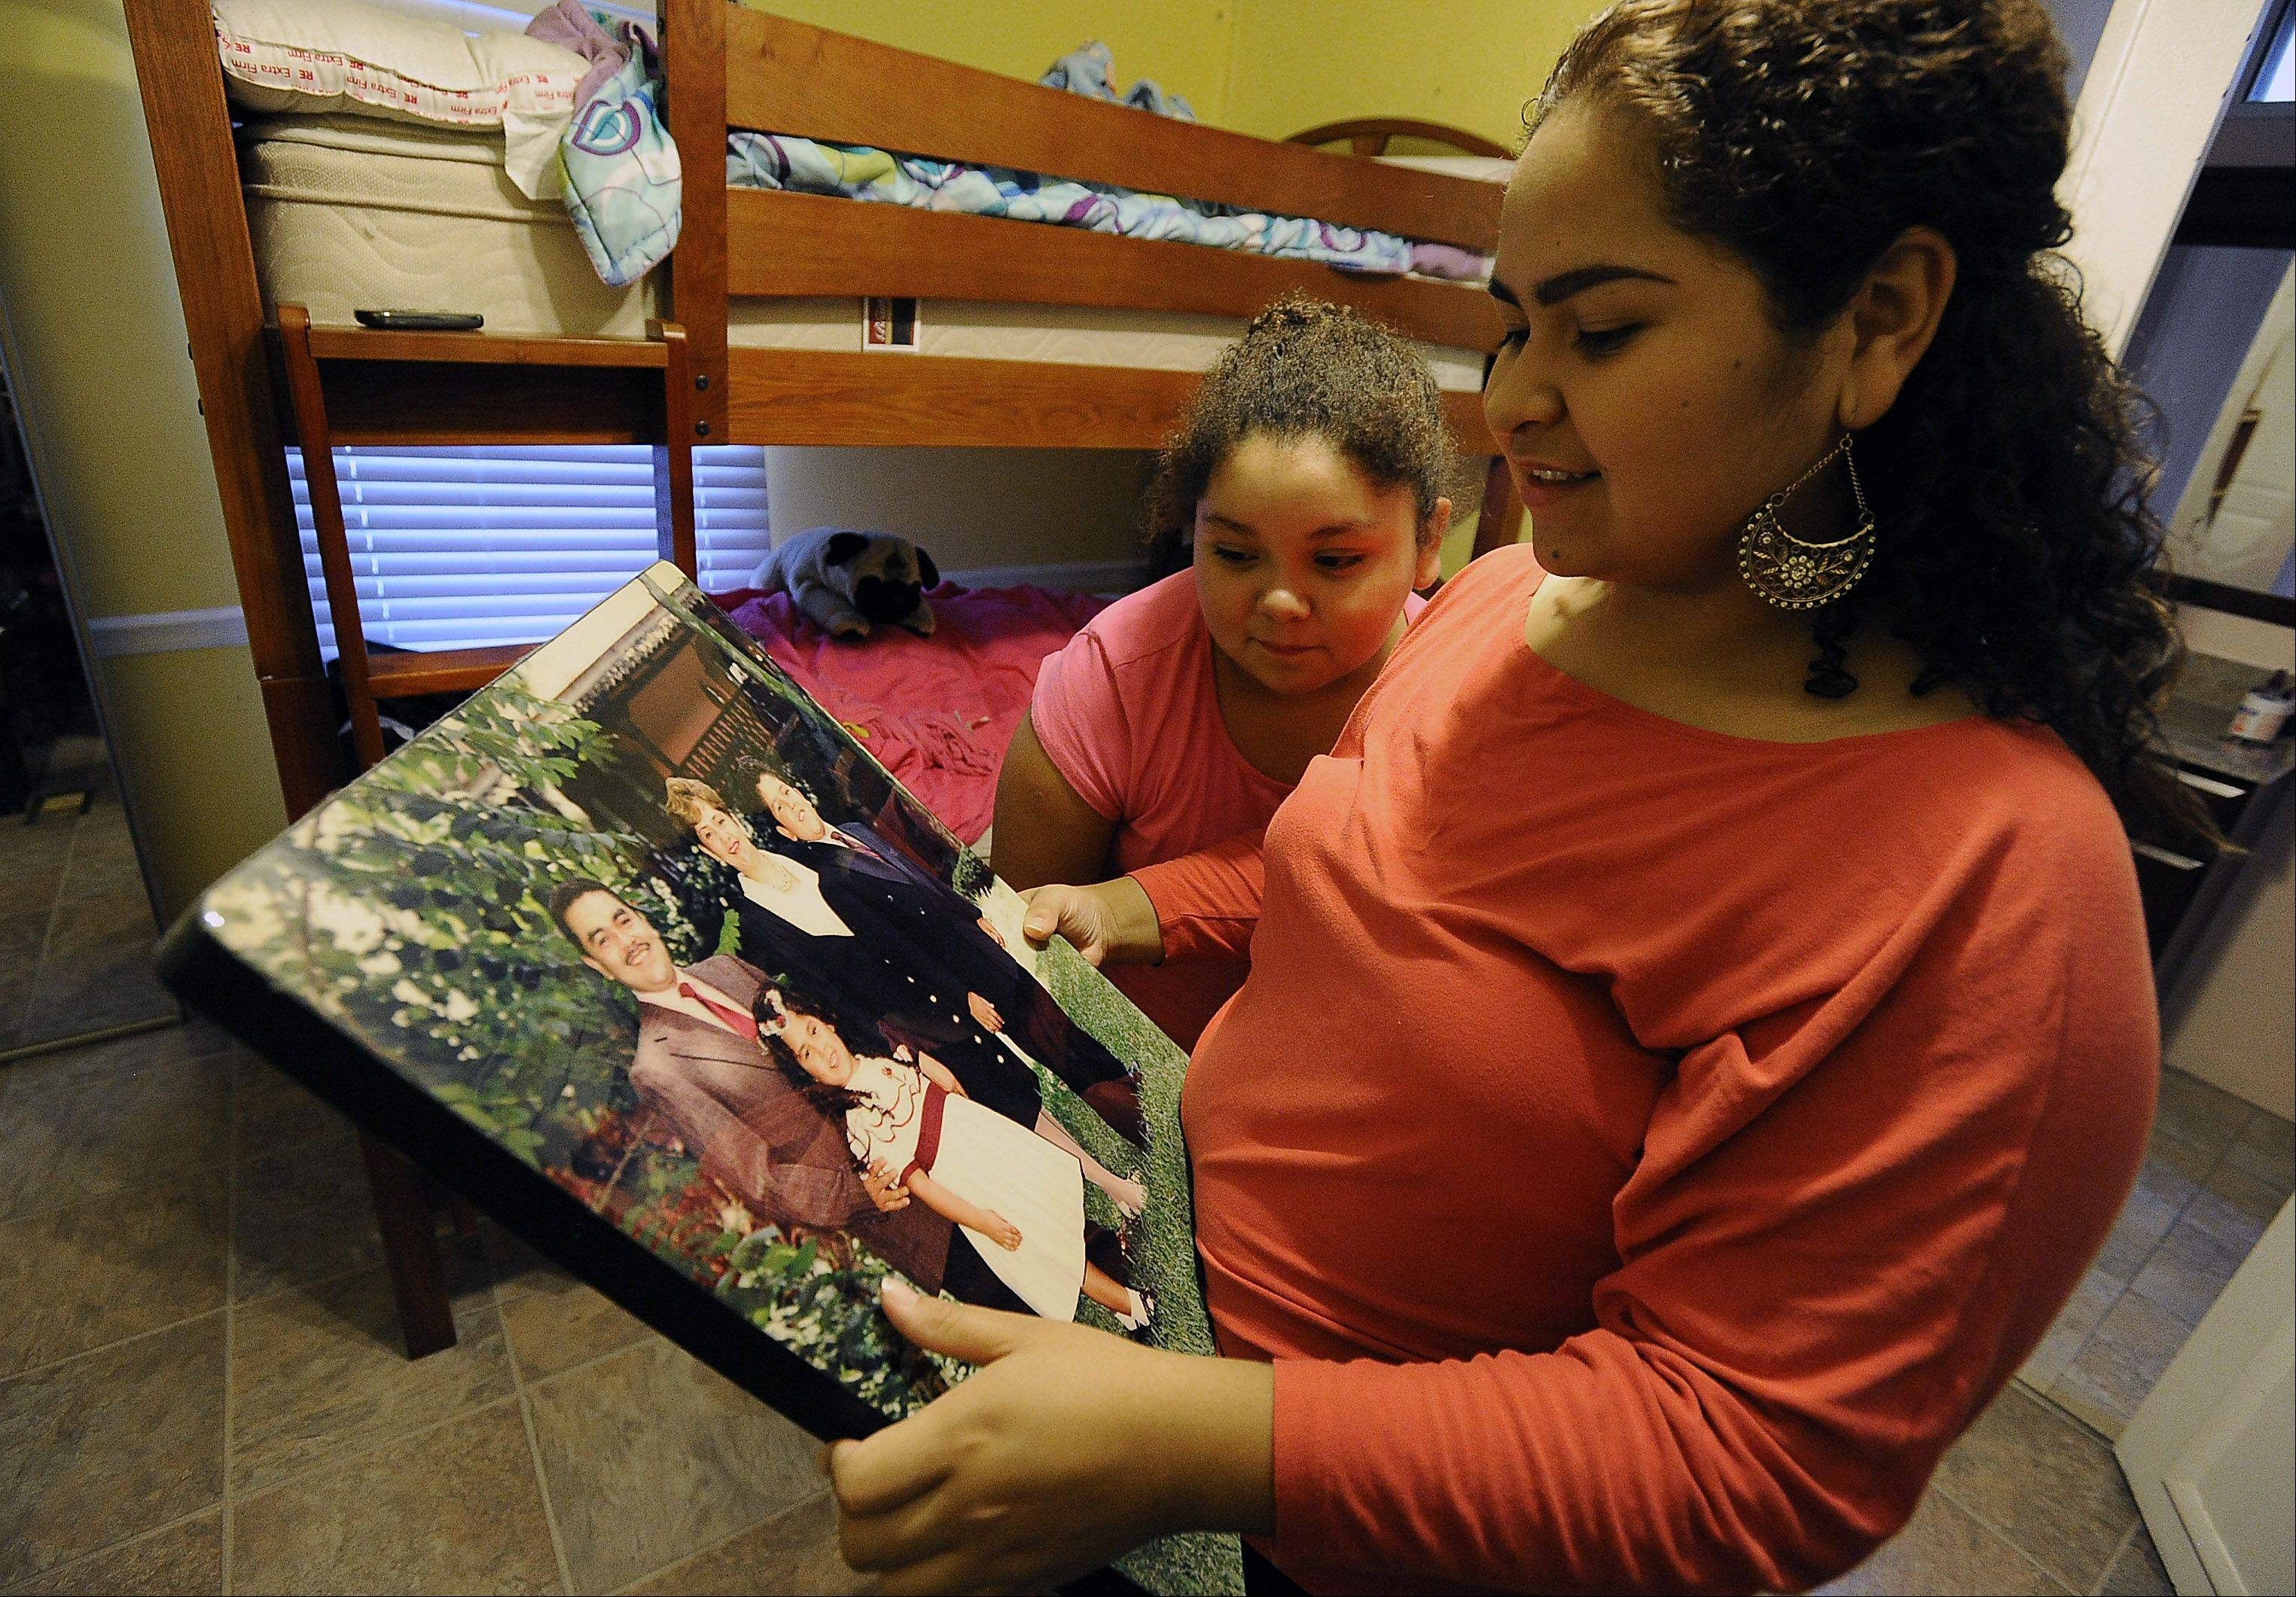 Greta Ramirez and her sister Karen look over a family picture from happier times in the bedroom they share in their Des Plaines area home.